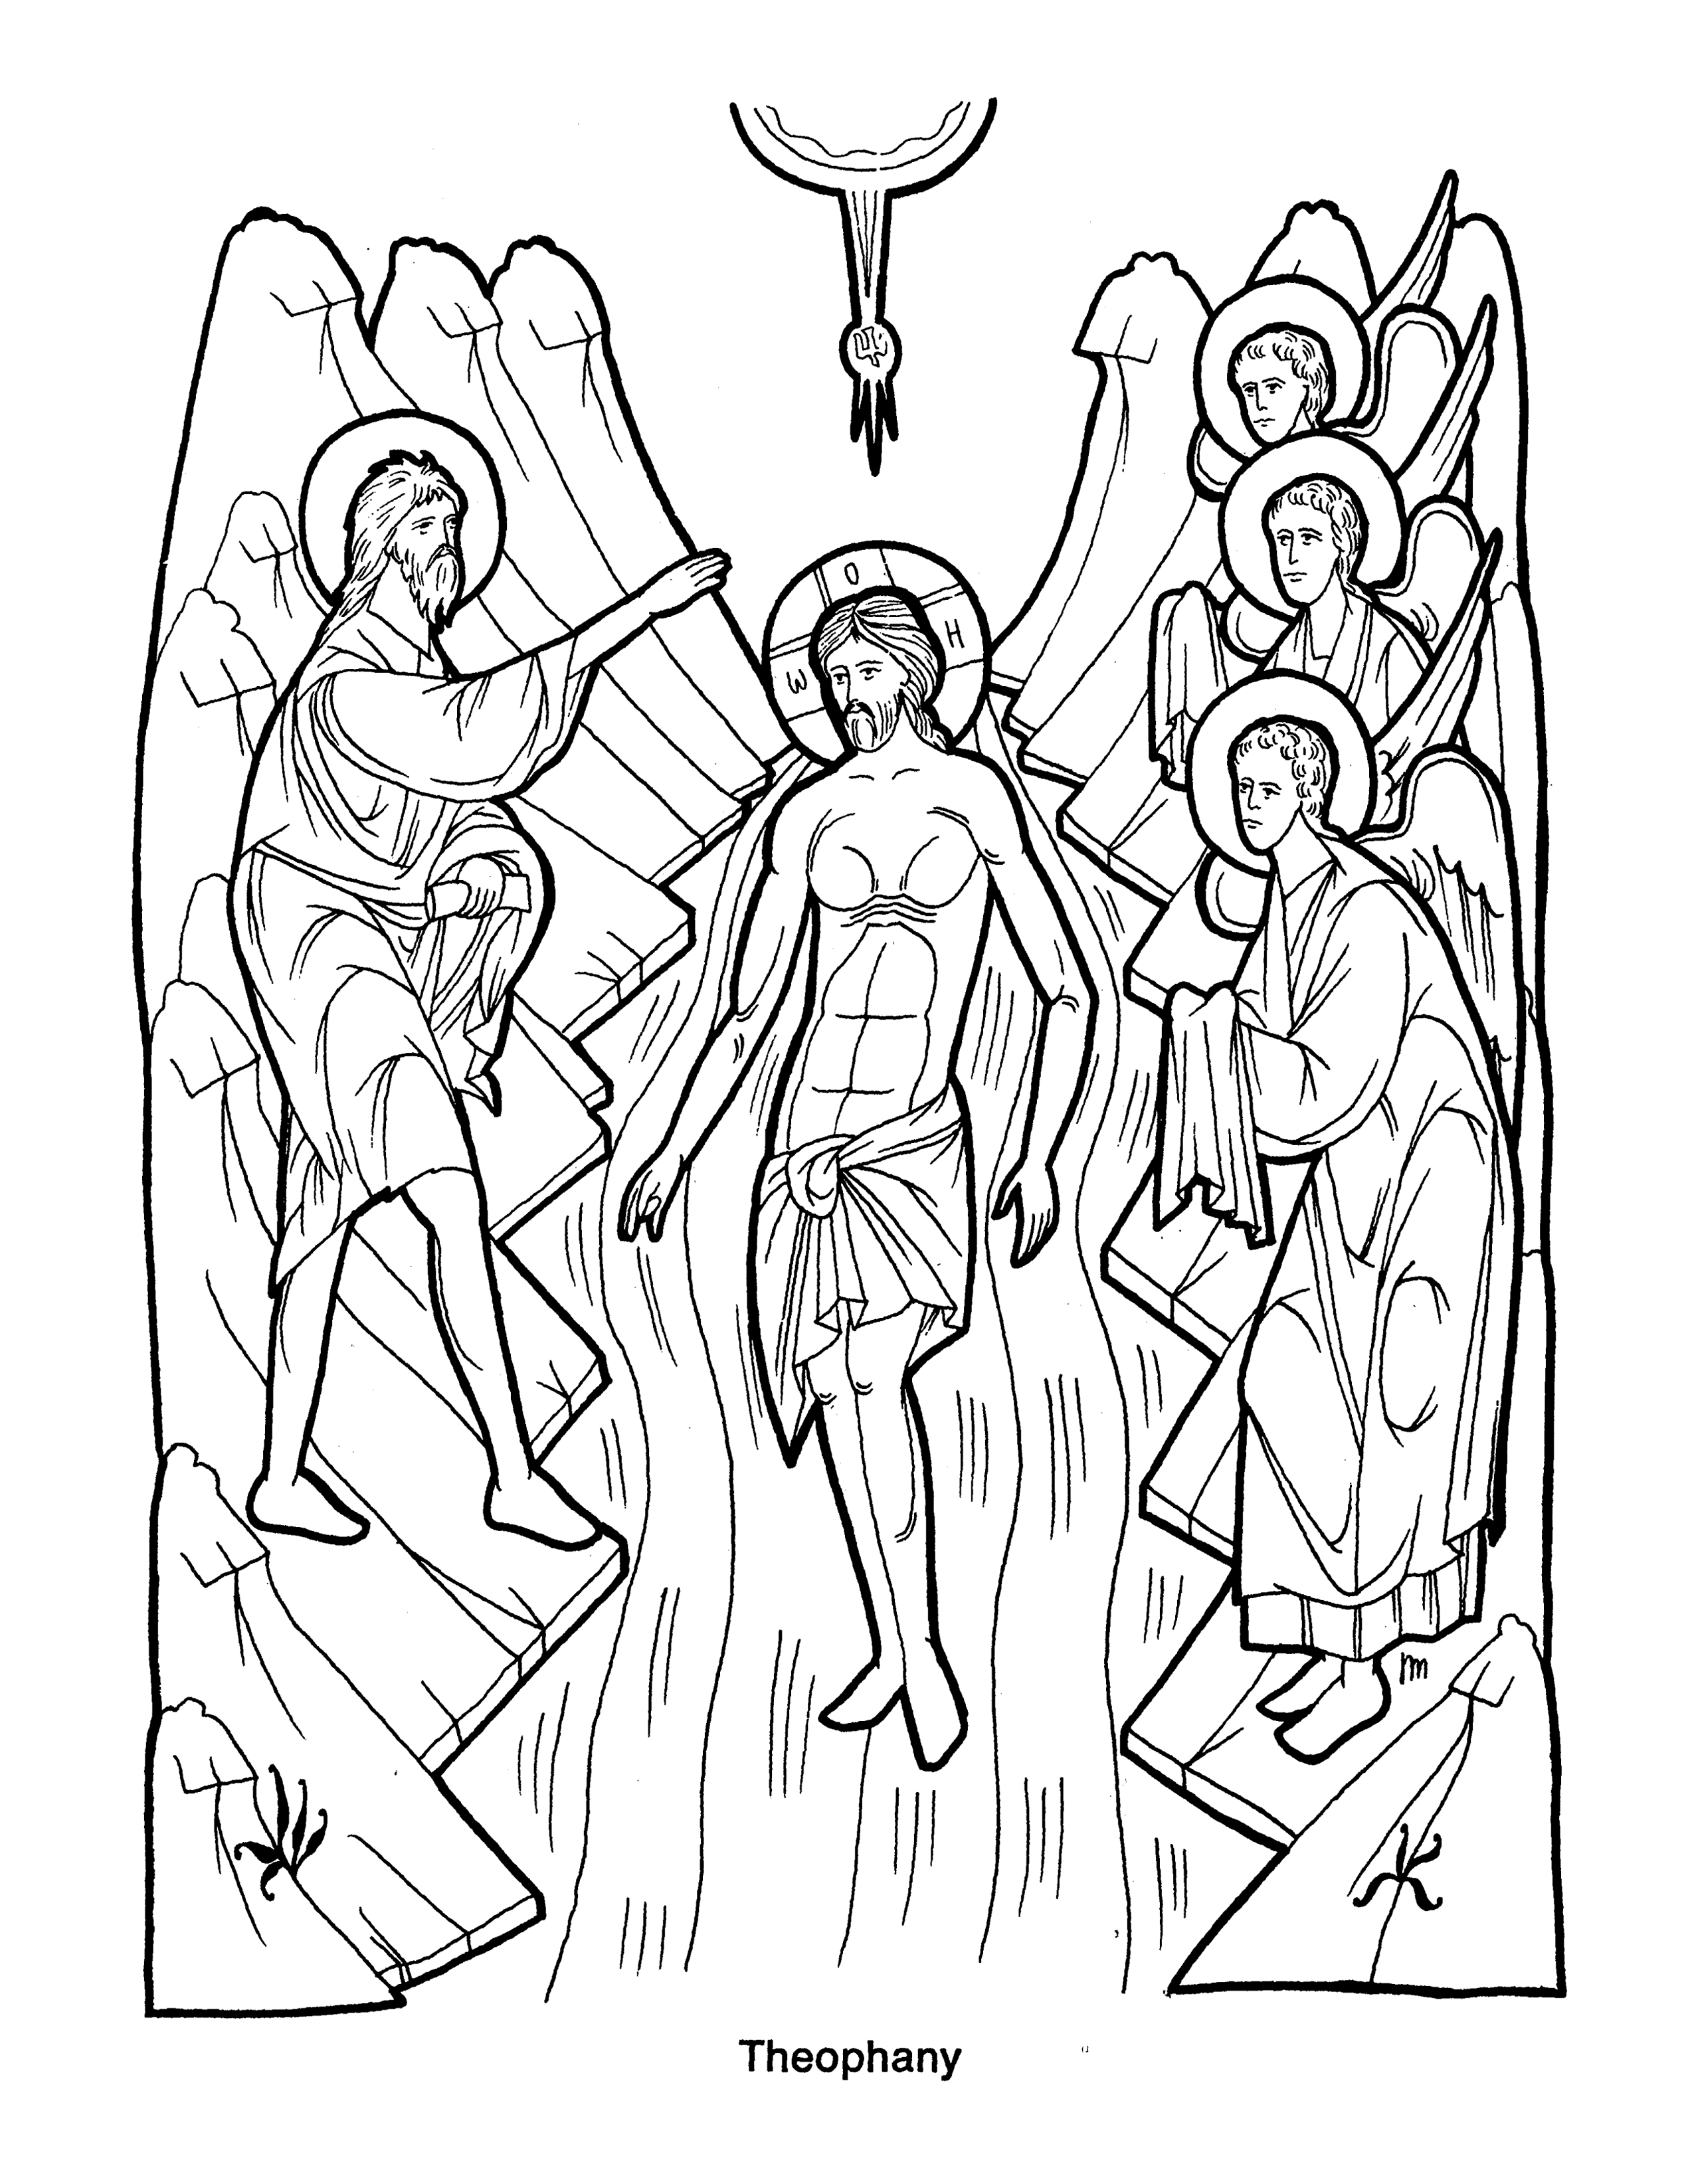 Free Coloring Pages Of Orthodox Icon Orthodox Christian Icons Eastern Orthodox Christian Christian Coloring